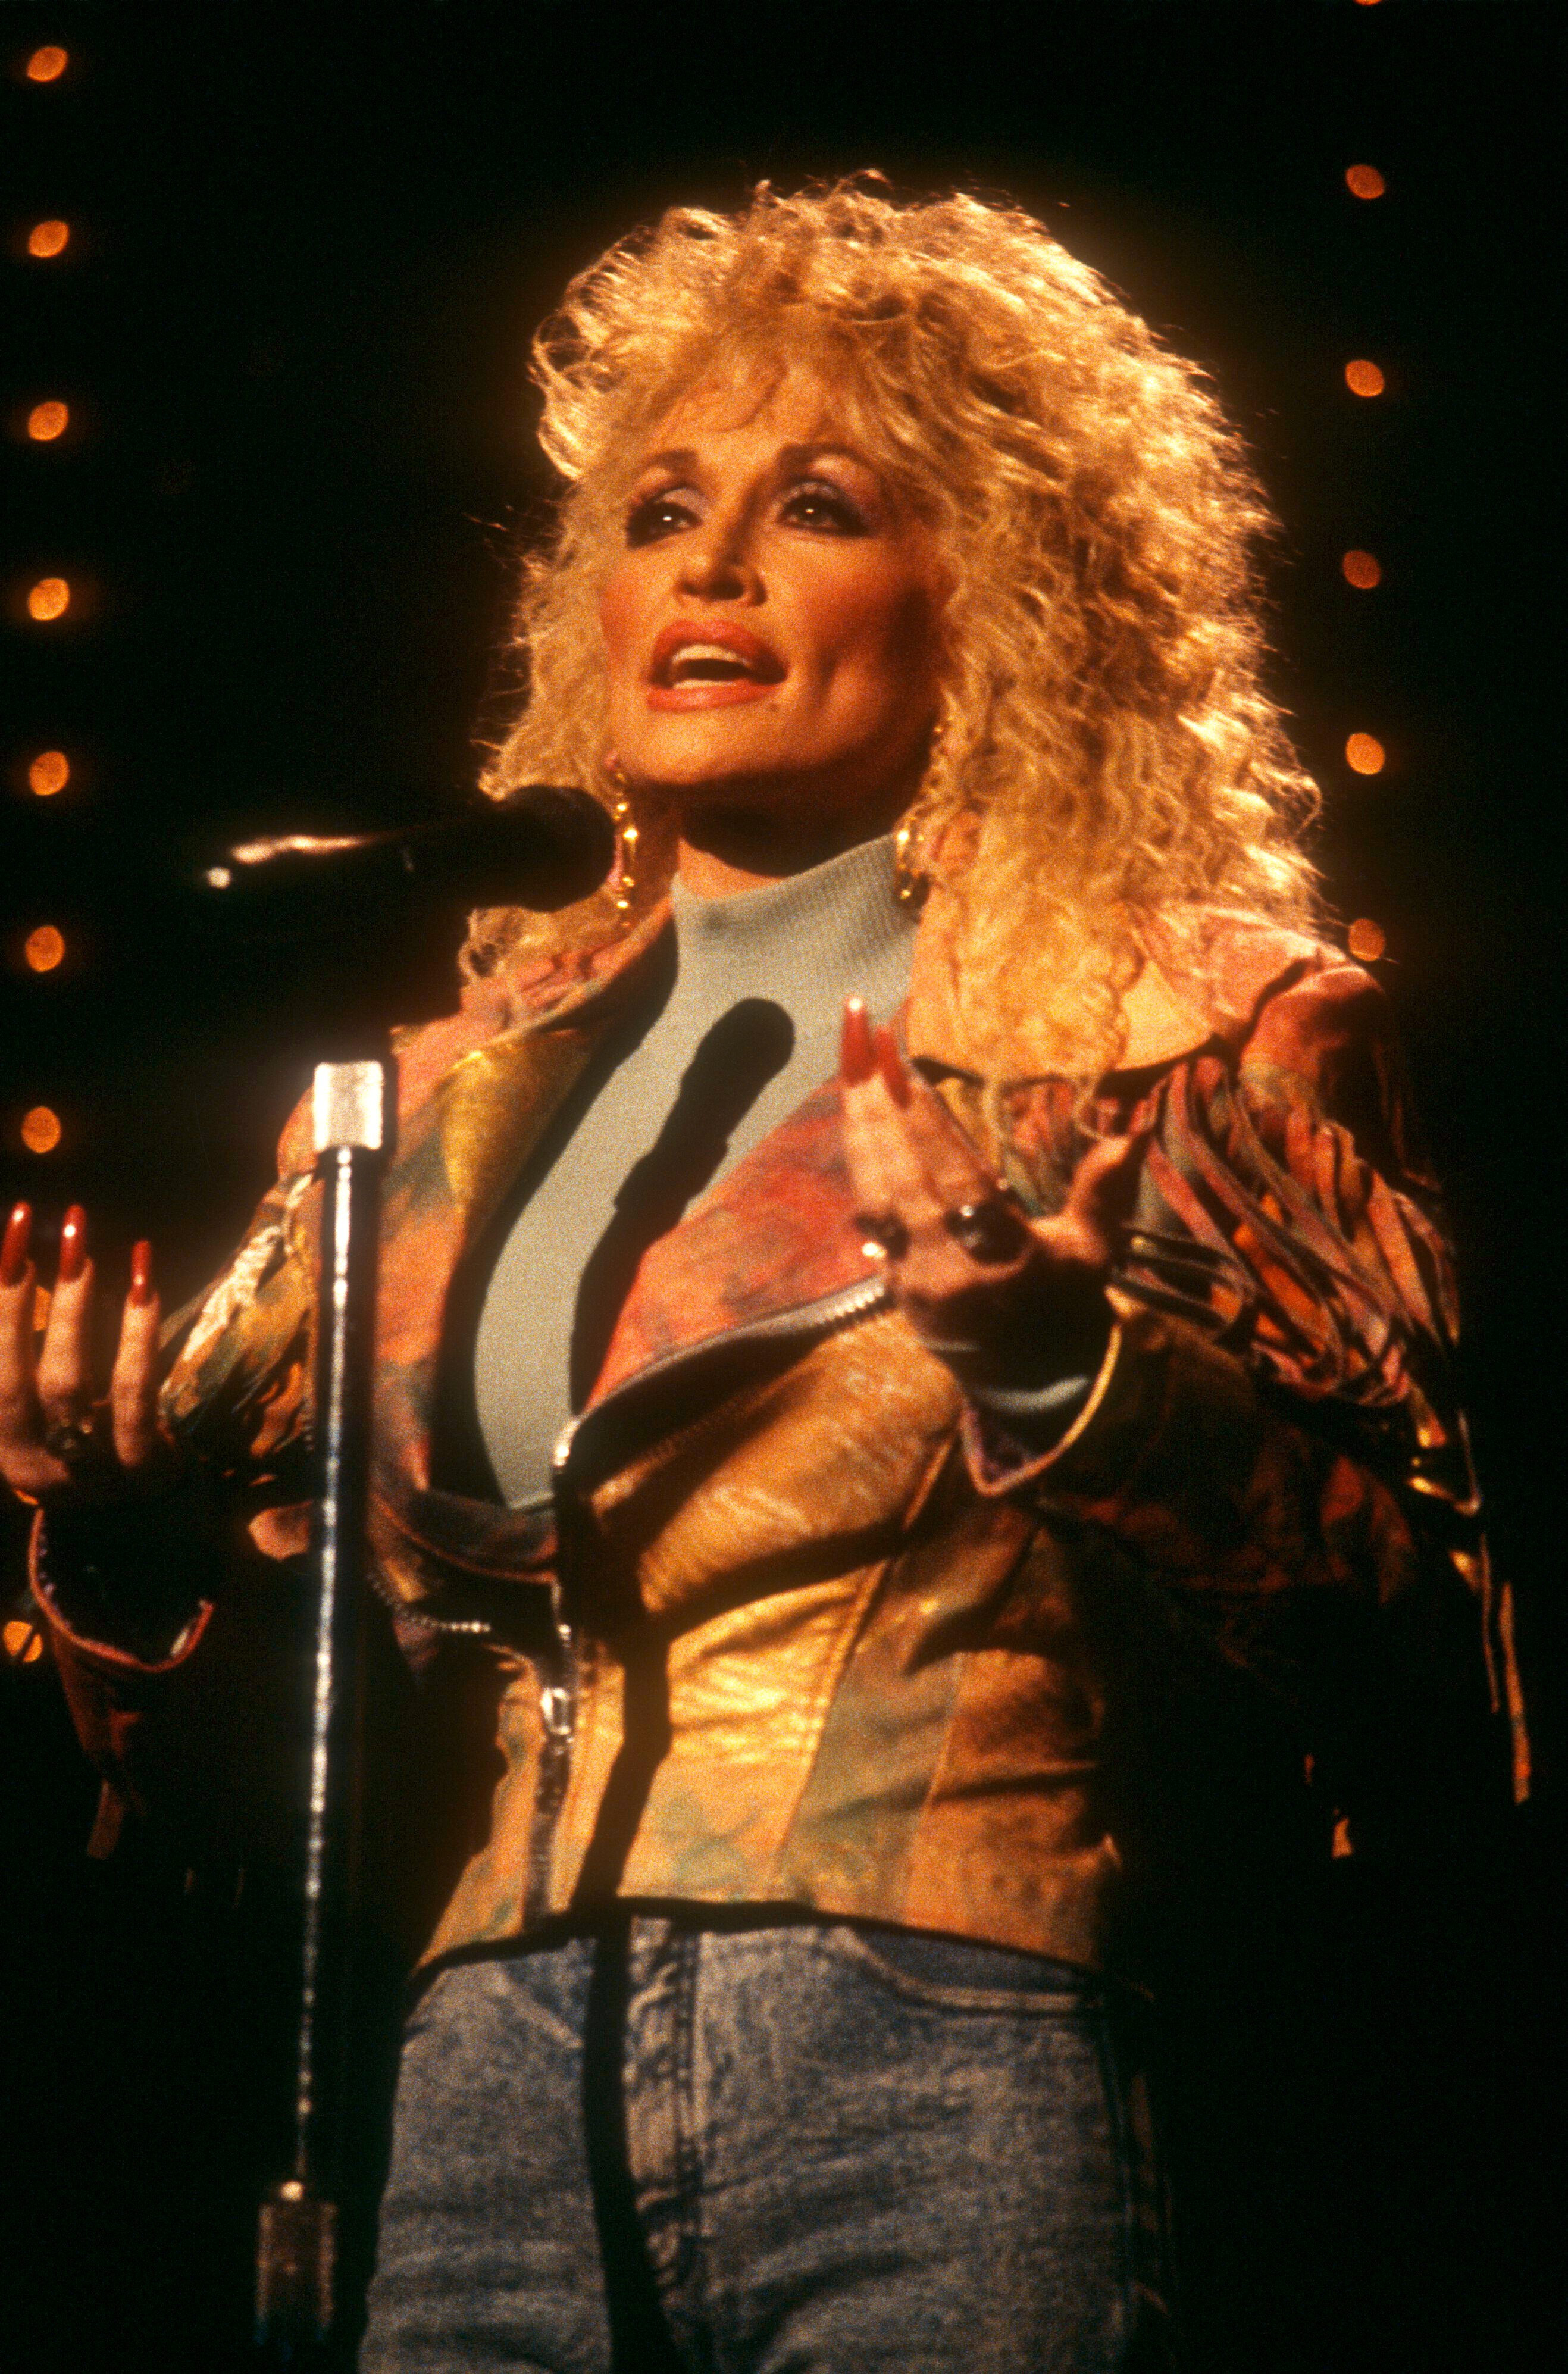 Dolly rehearsing for the Gospel Music Association Dove Awards in 1989 in Nashville.   Photo: Getty Images